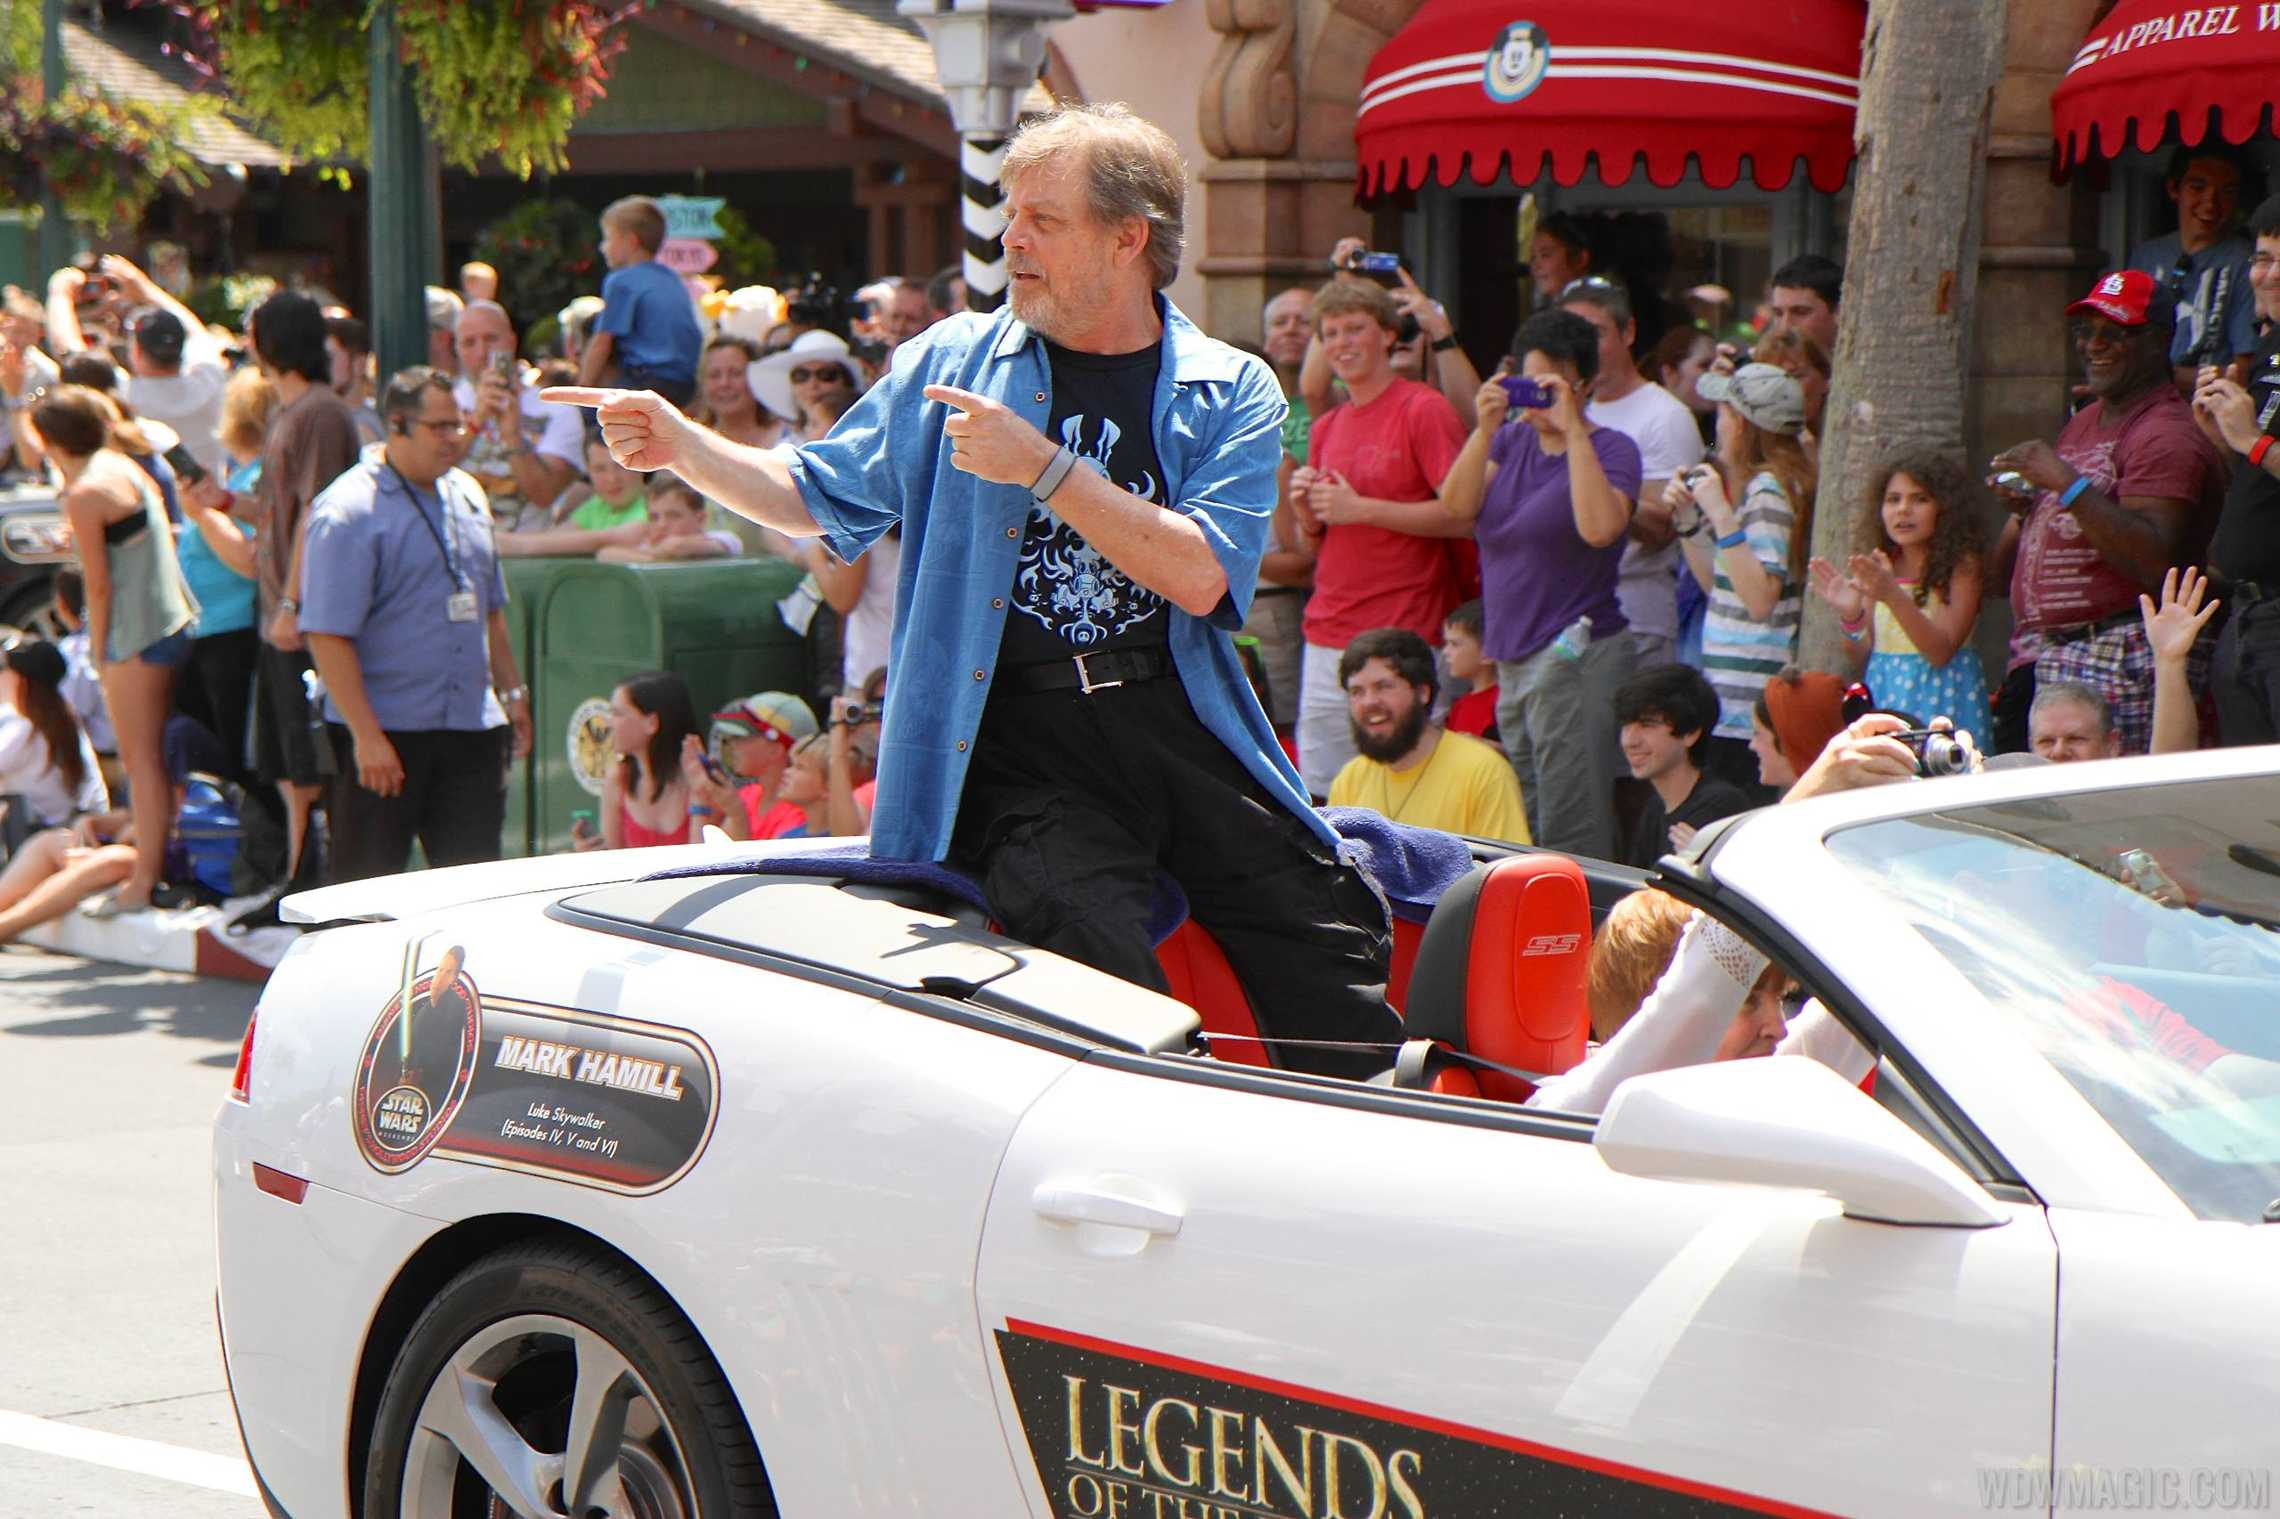 Mark Hamill at Star Wars Weekends